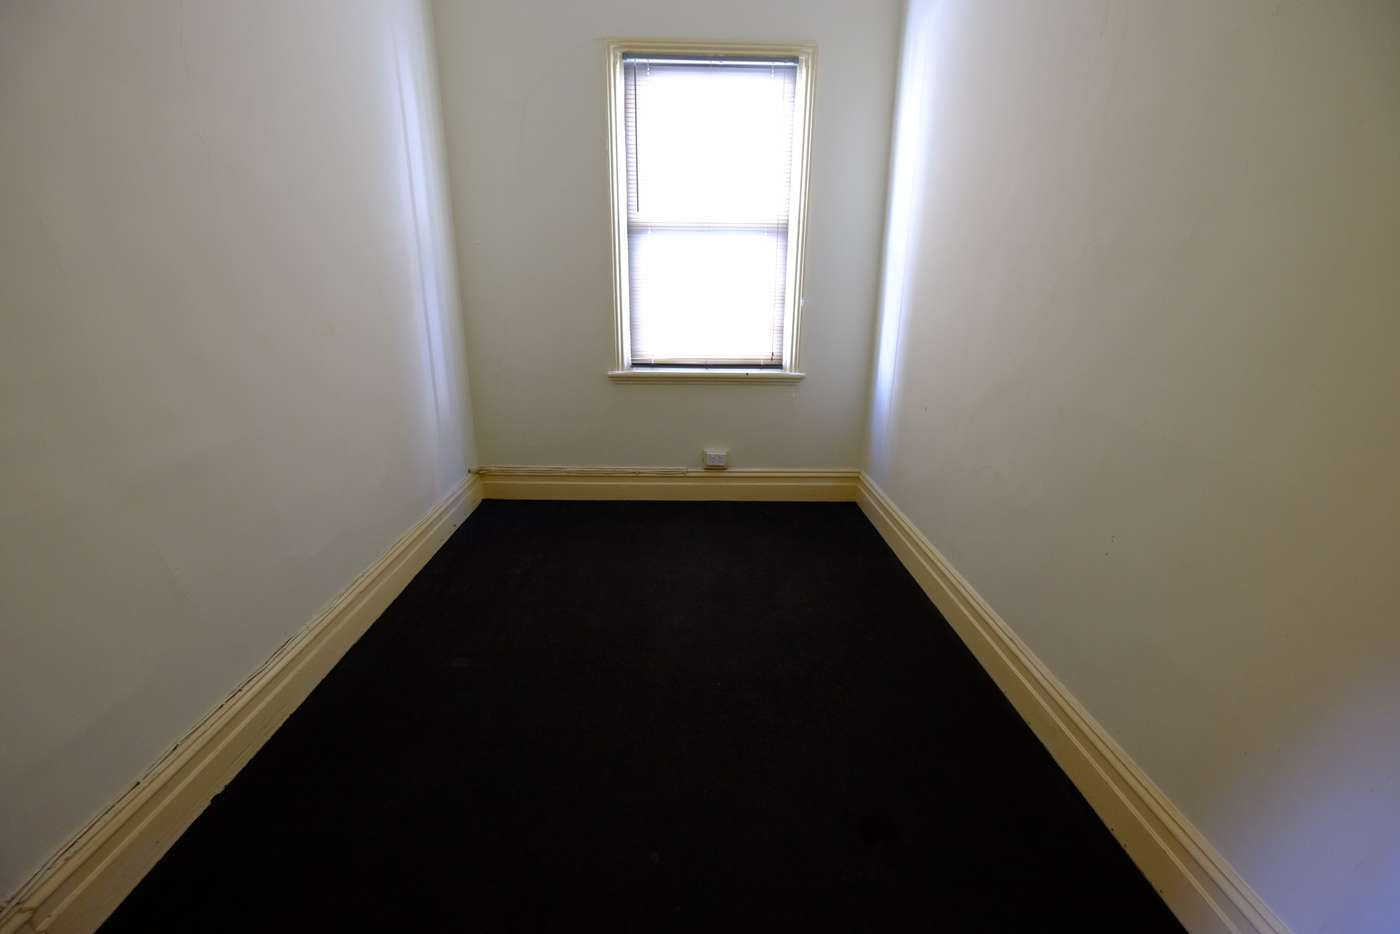 Seventh view of Homely house listing, 44 Maitland Street, Glen Iris VIC 3146